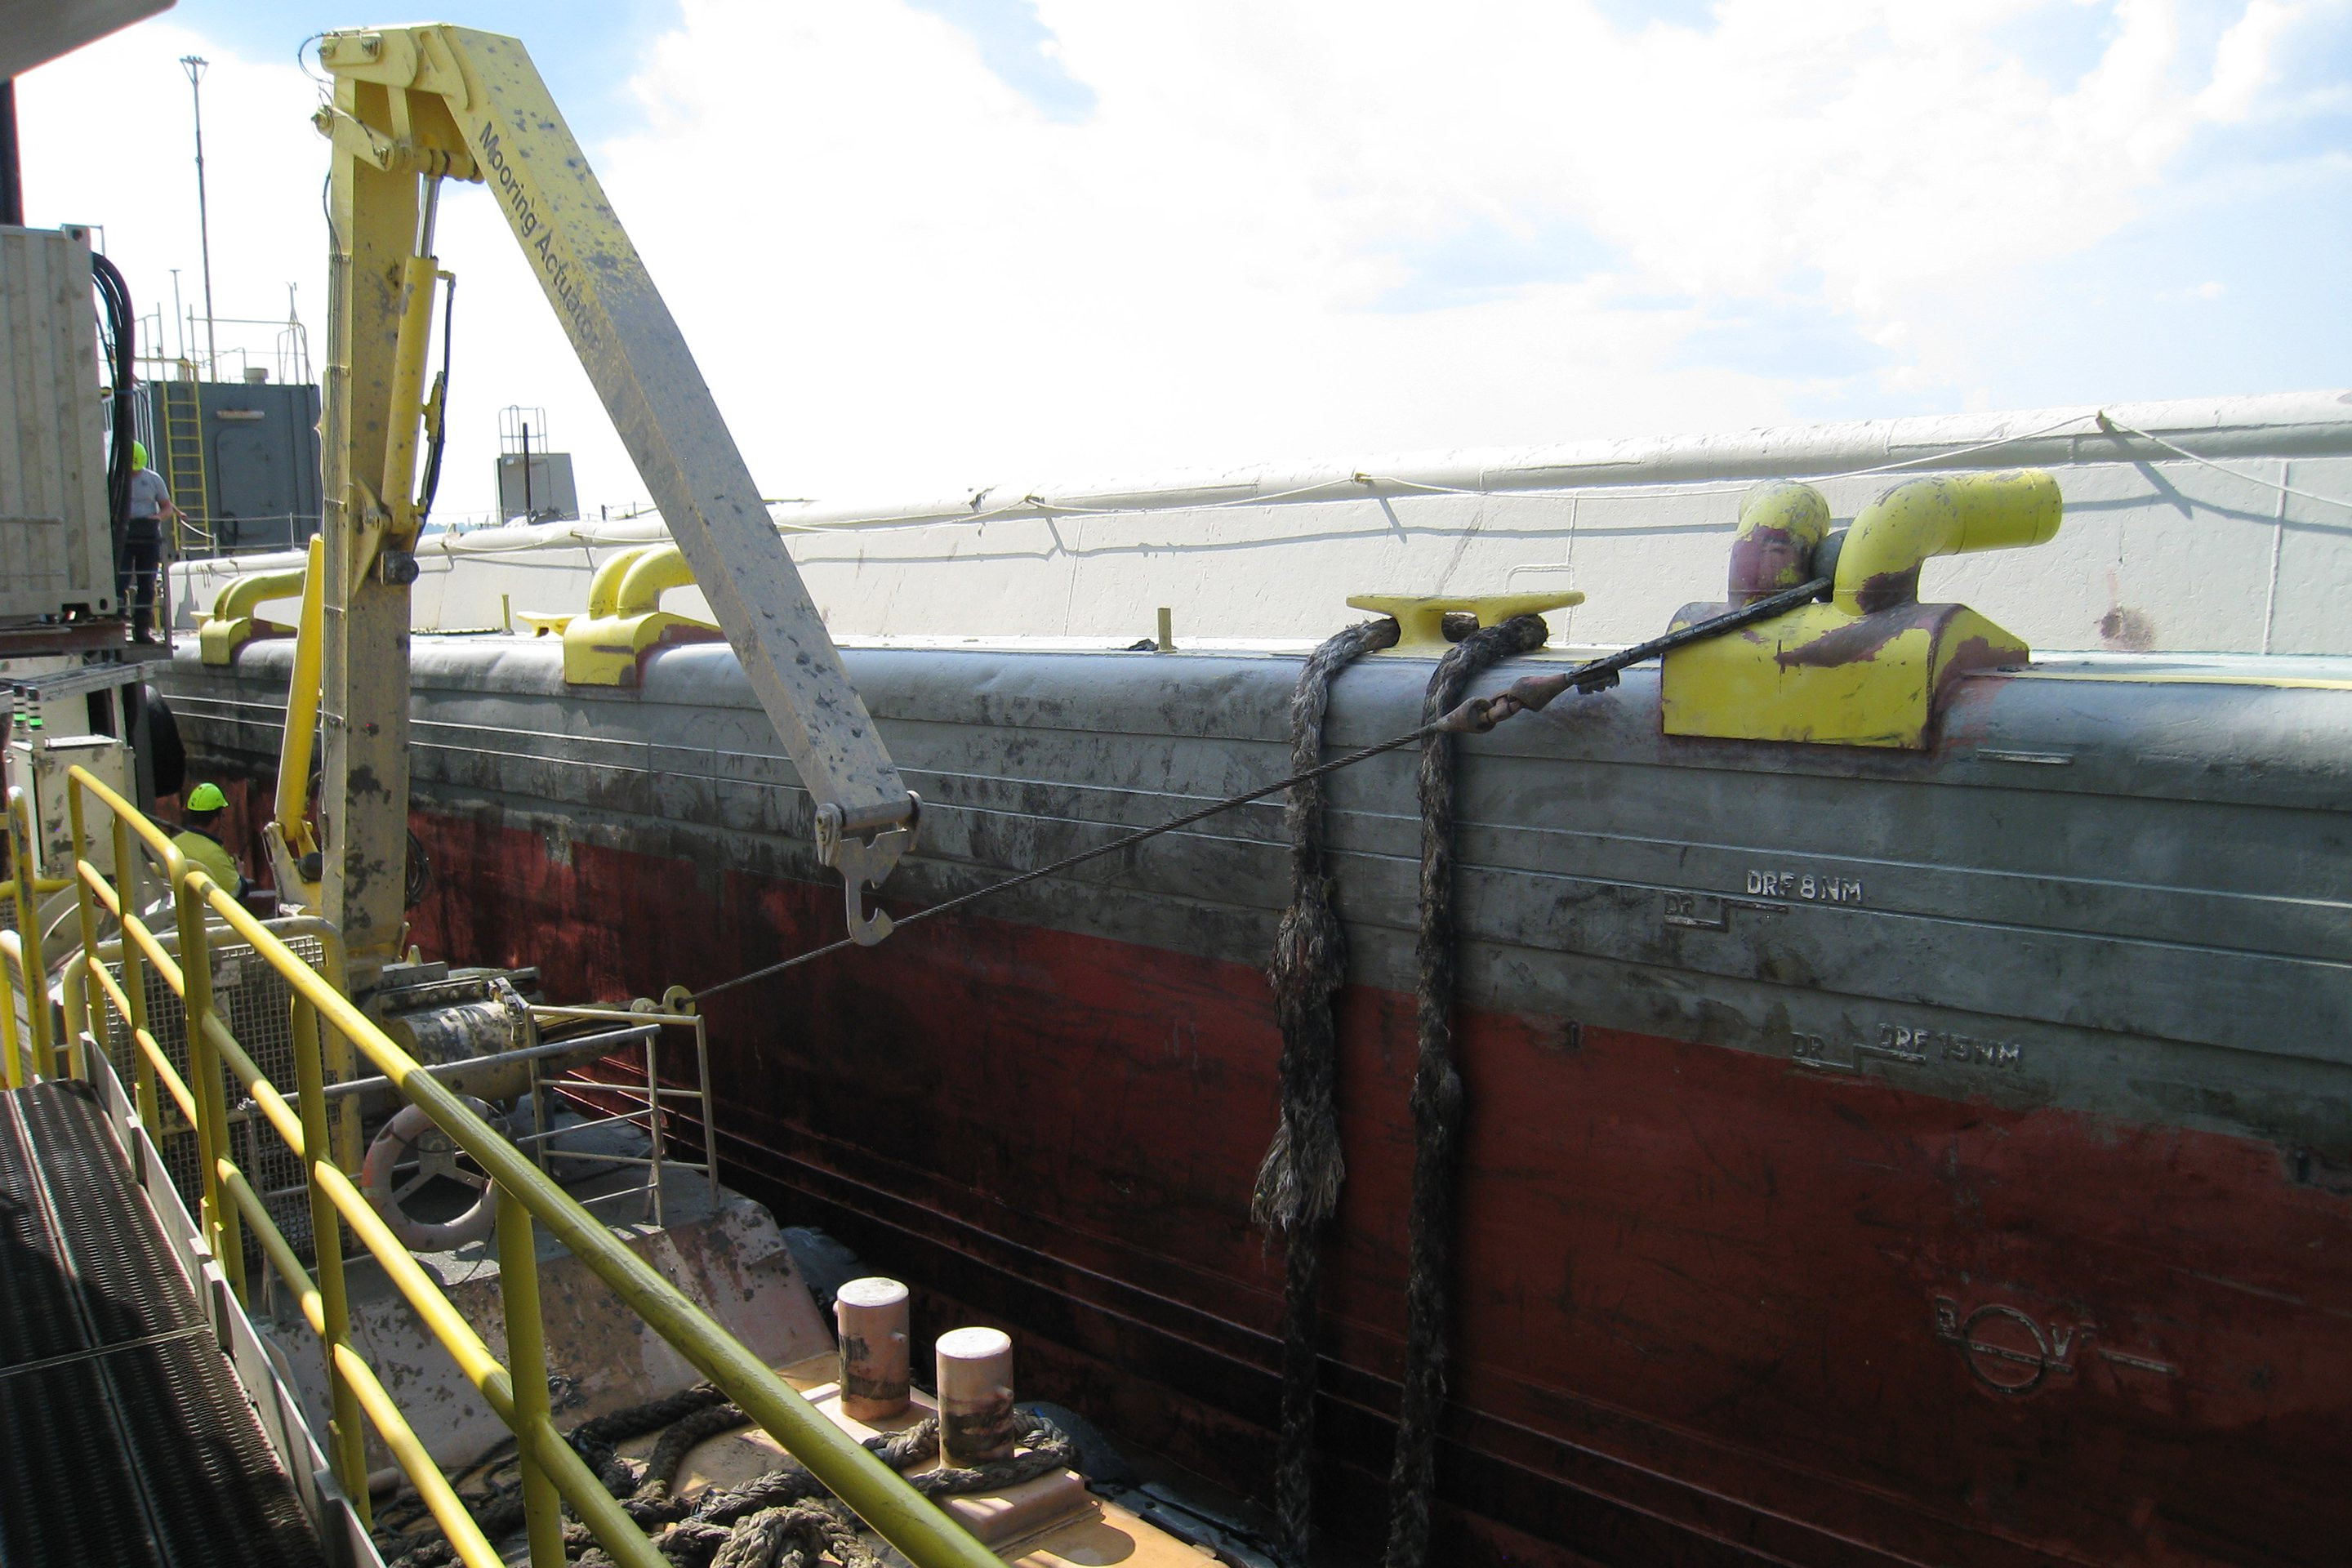 Specially developed constant tension (CT) winches roll up the line and pull the barge to the backhoe